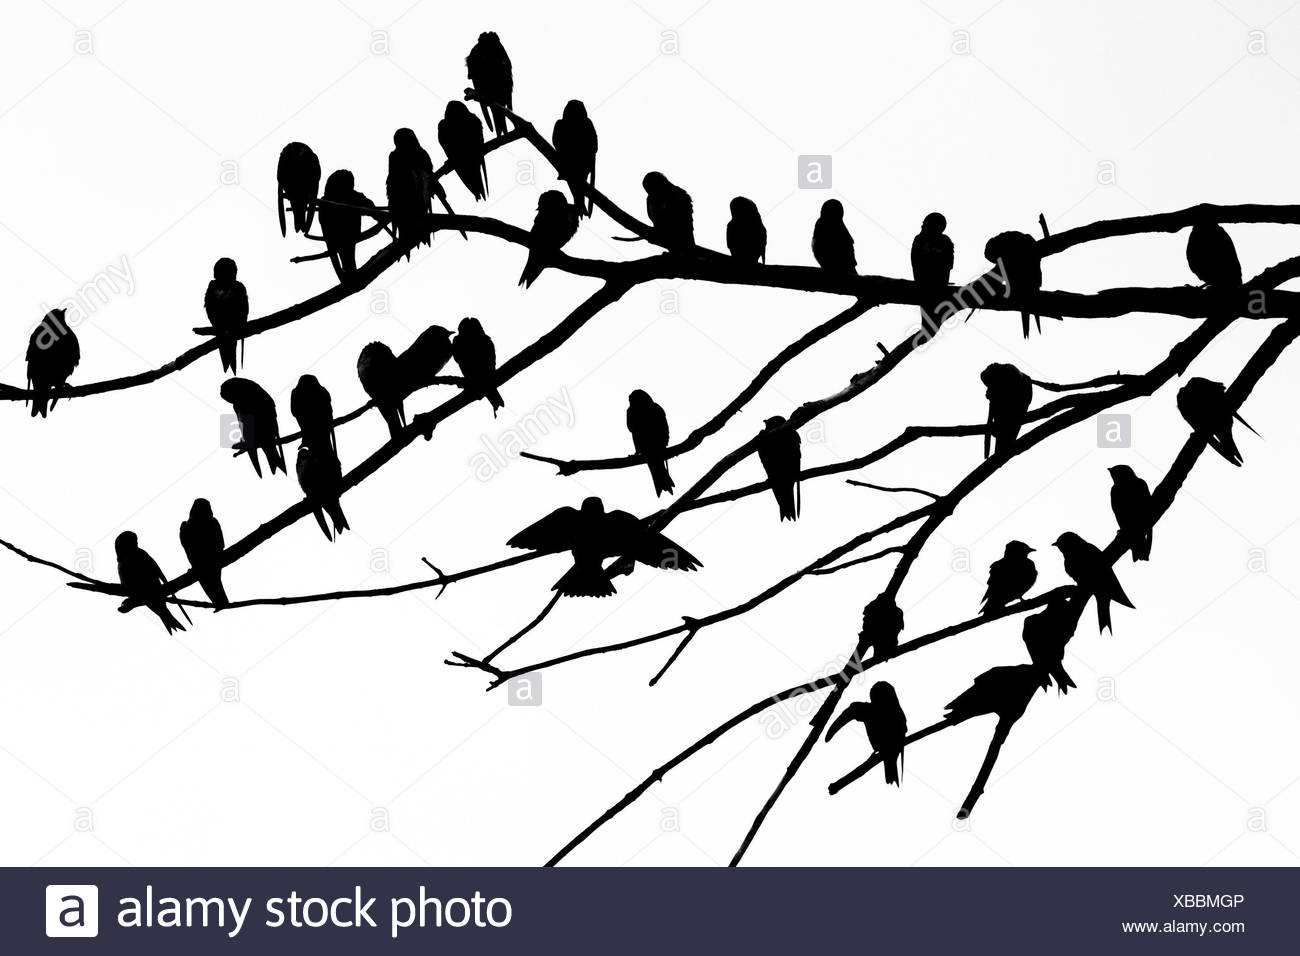 Silhouette of birds perched on the branches of a dead tree above the Occoquan River. Stock Photo